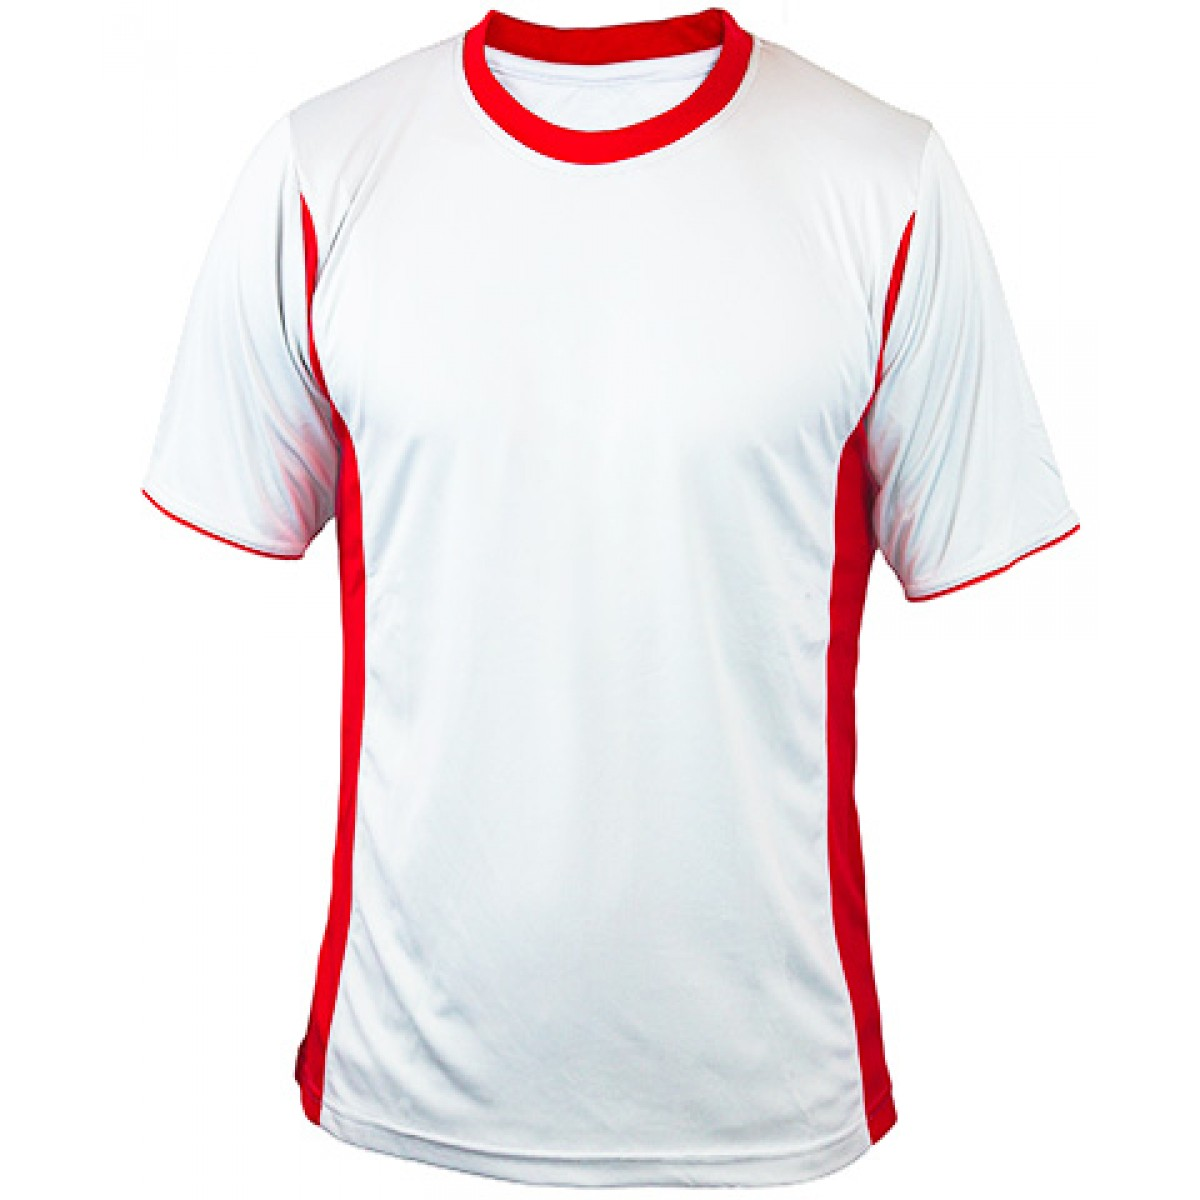 Short Sleeves Performance Fit With Side Insert-Red-L